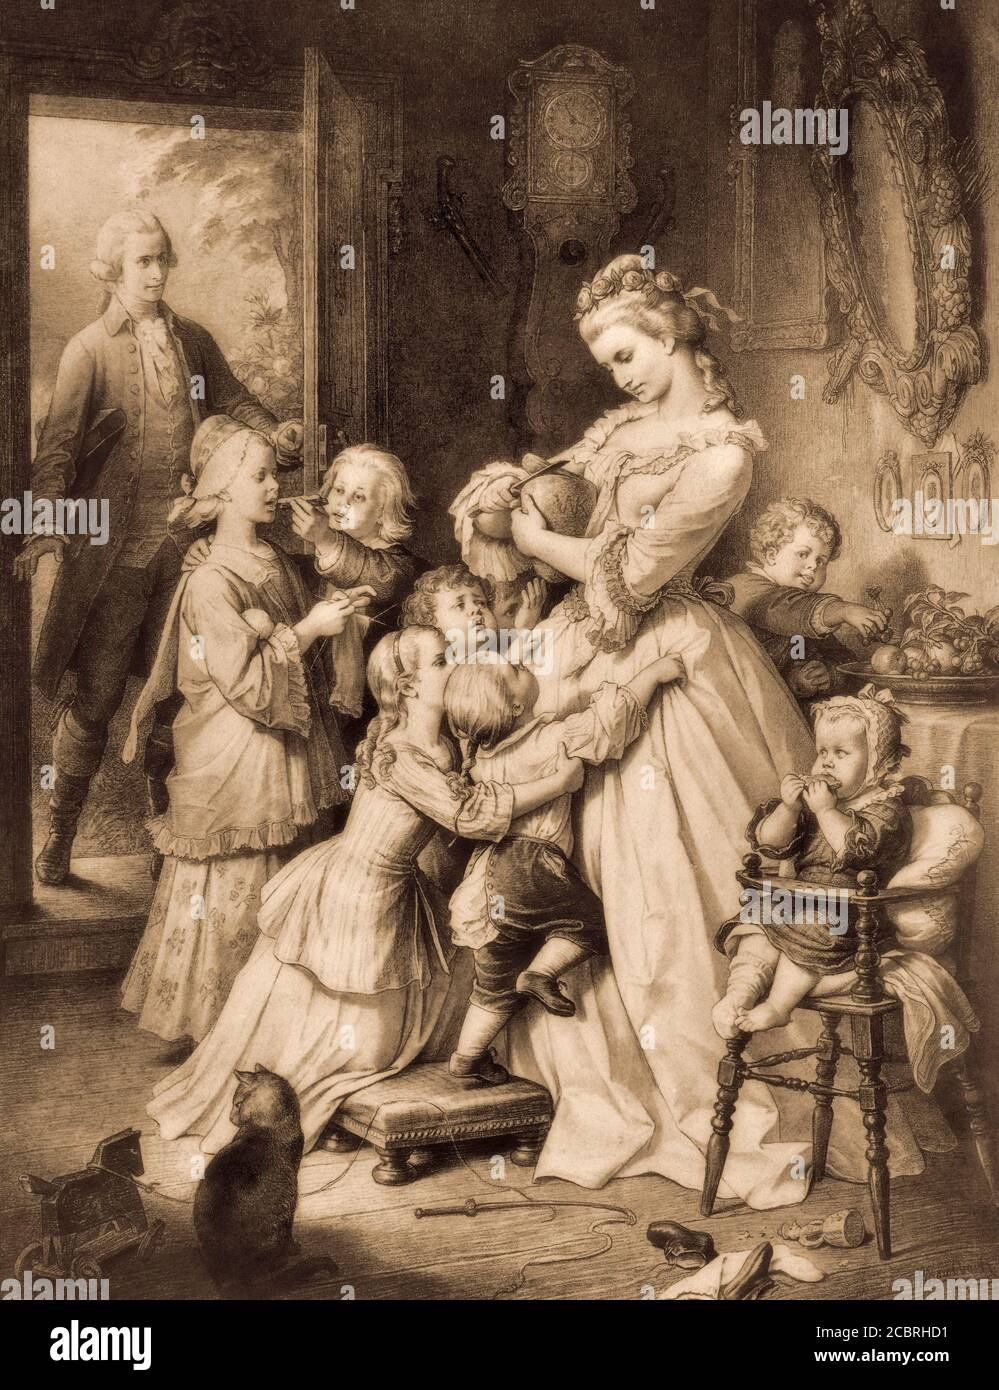 Charlotte with her younger siblings, The Sorrows of Young Werter, a novel by Johann Wolfgang von Goethe, after Wilhelm von Kaulbach Stock Photo